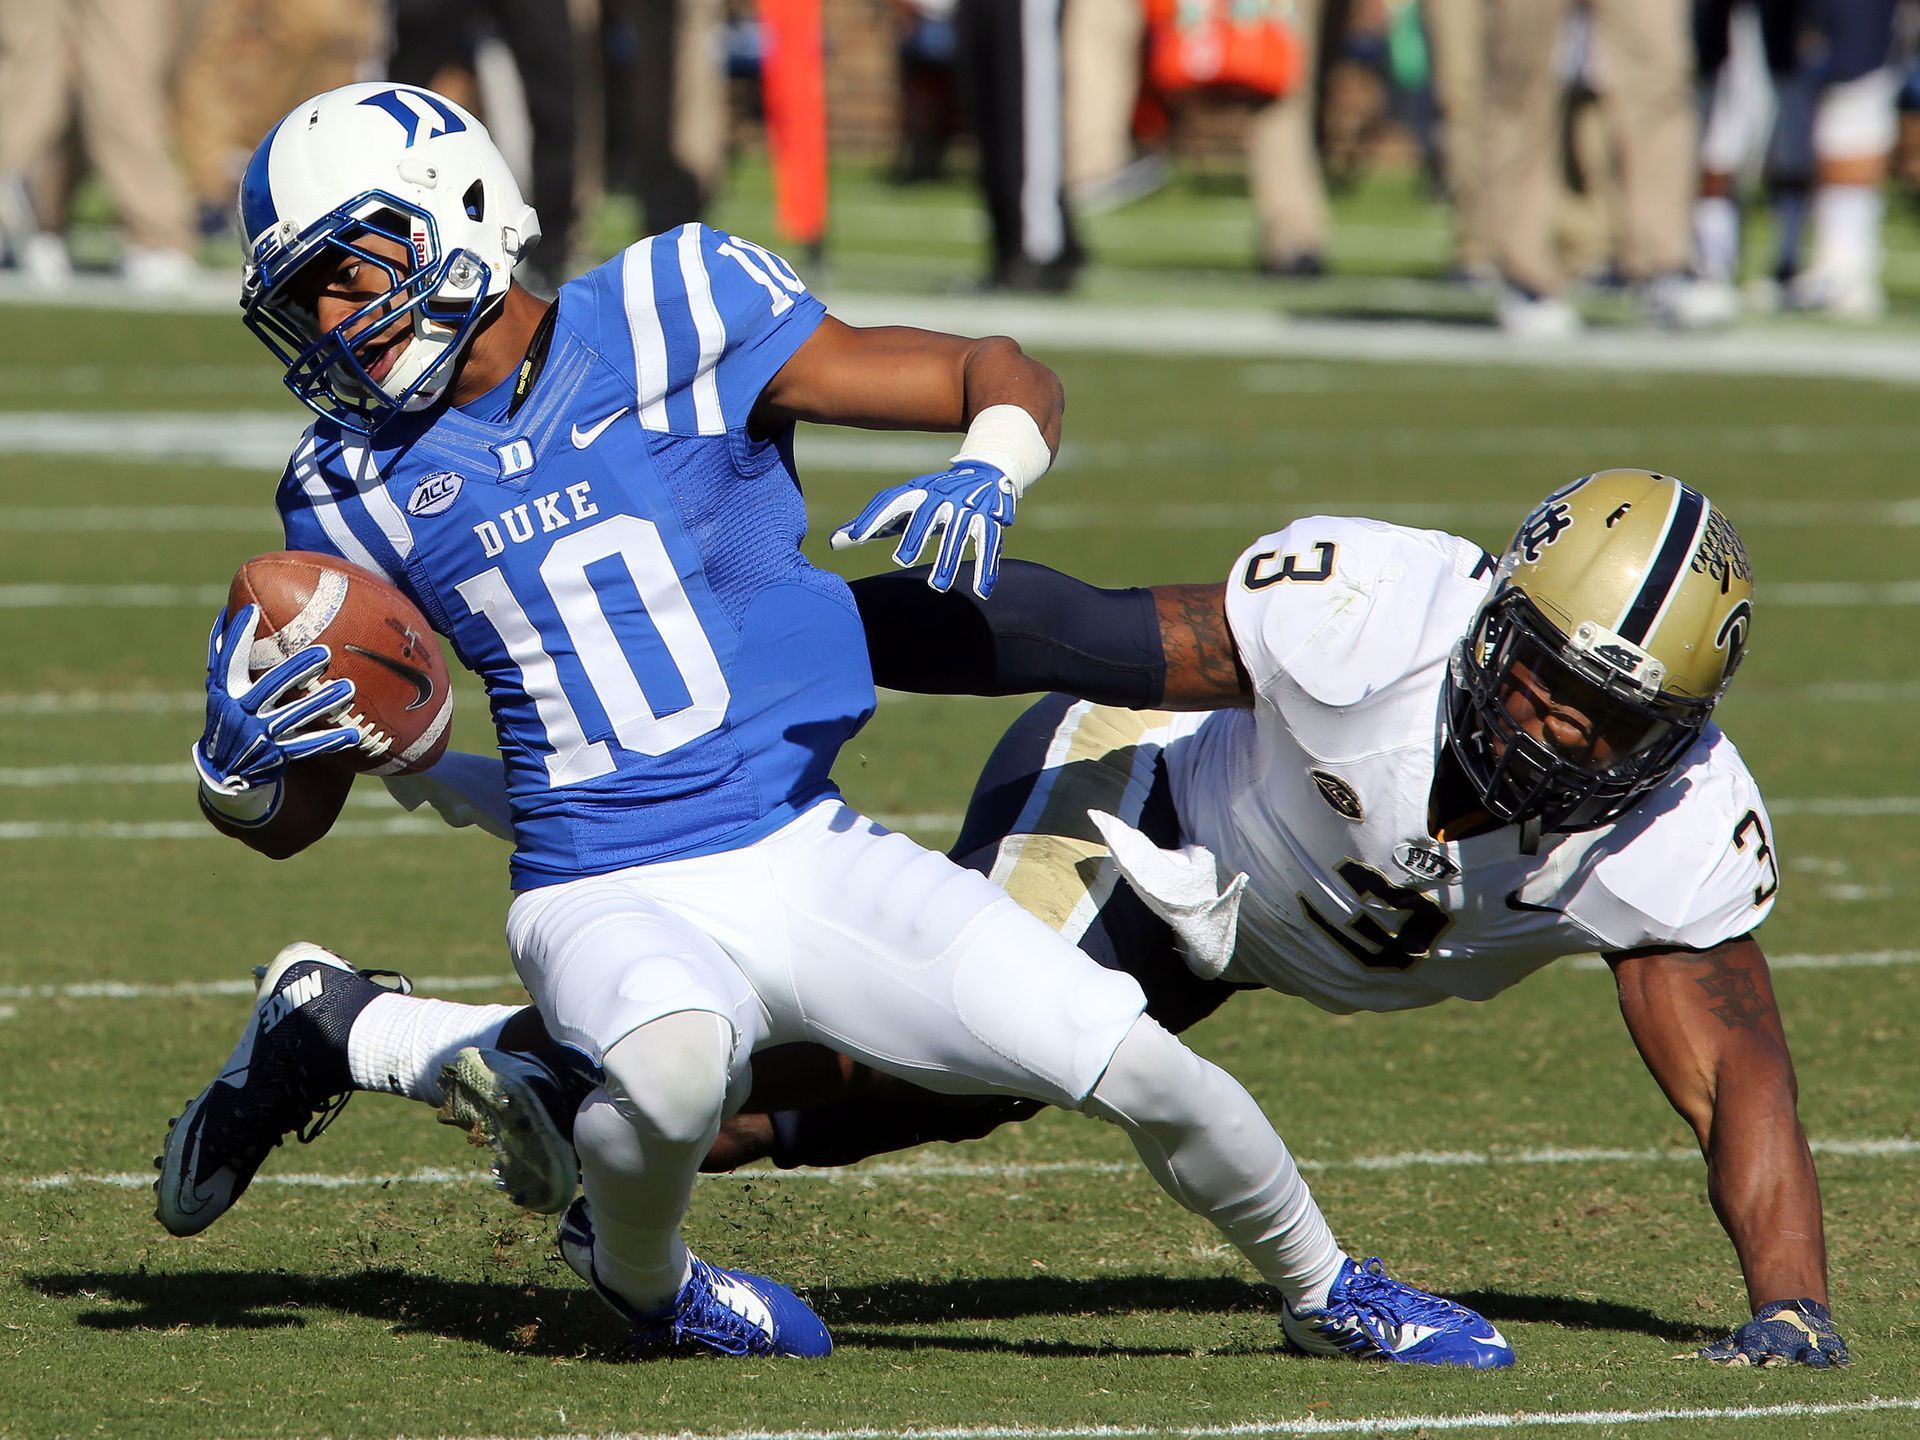 Duke wide receiver Ryan Smith is taken down by Pittsburgh